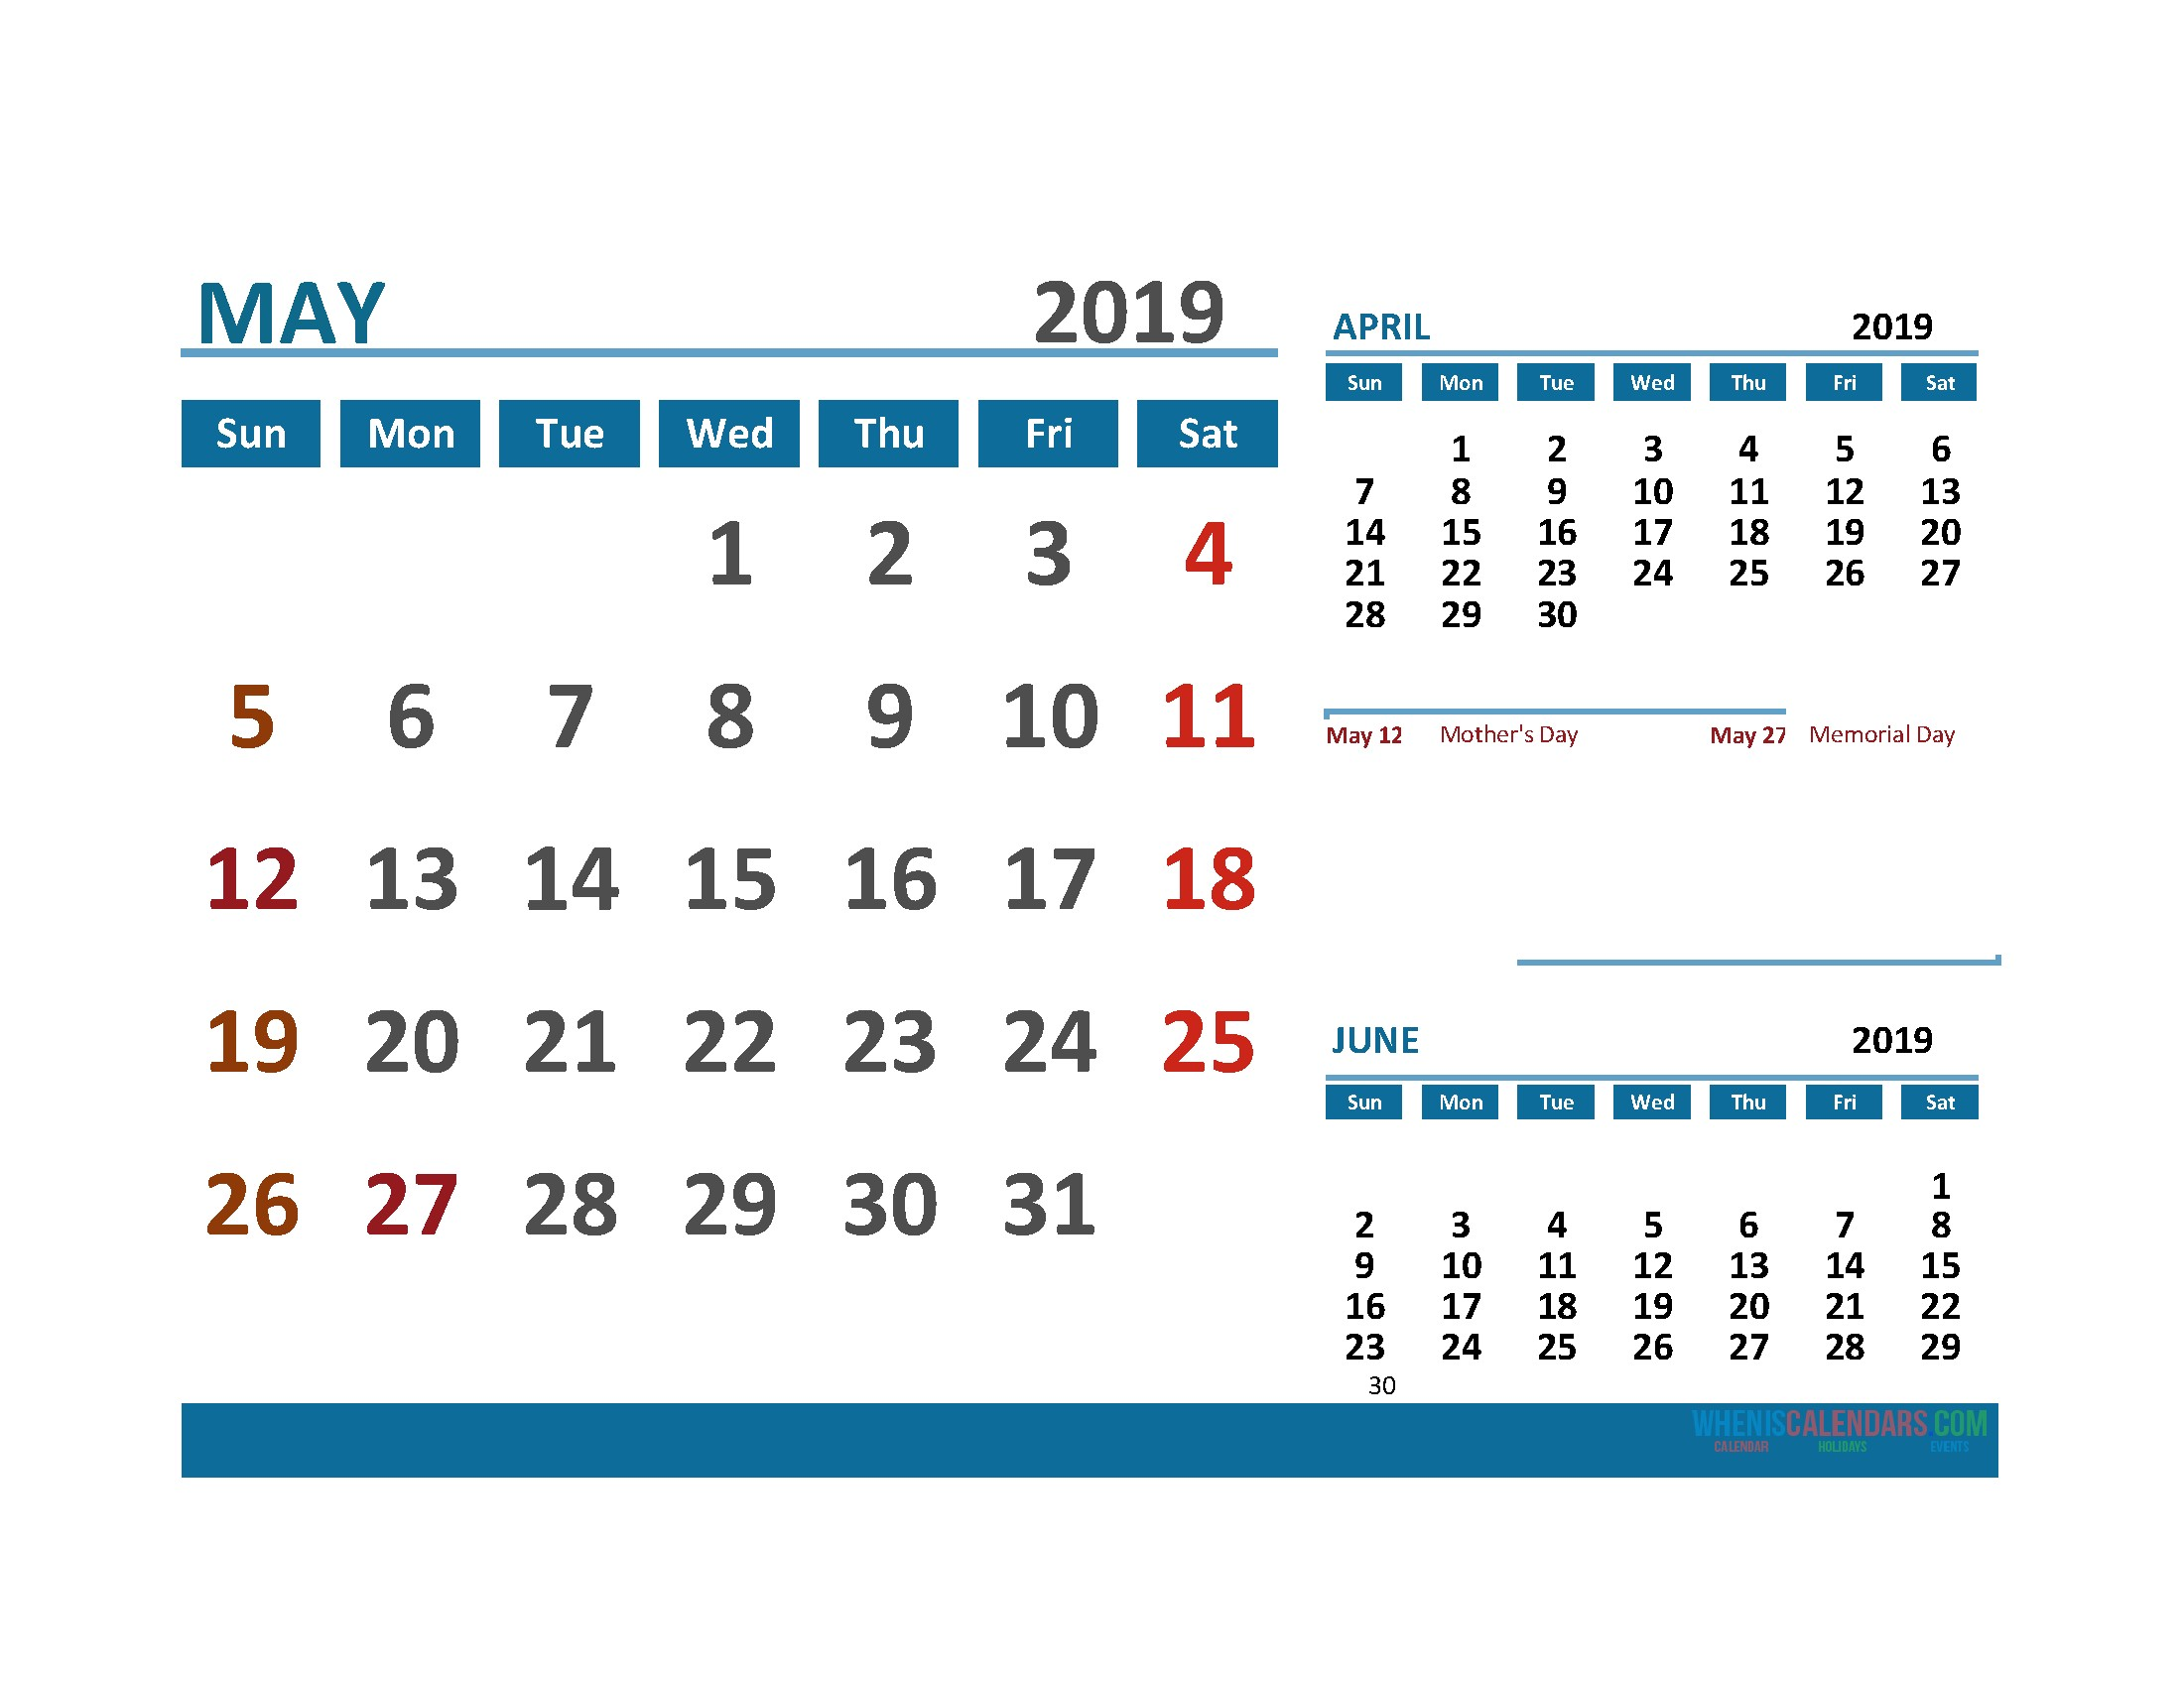 Excel 2019 Yearly Calendar Template Más Reciente Excel Calendar 2019 Neva Dlugopisyreklamowe Of Excel 2019 Yearly Calendar Template Más Caliente Free Excel Calendar Es Yearly Financial Planner E south Africa Year